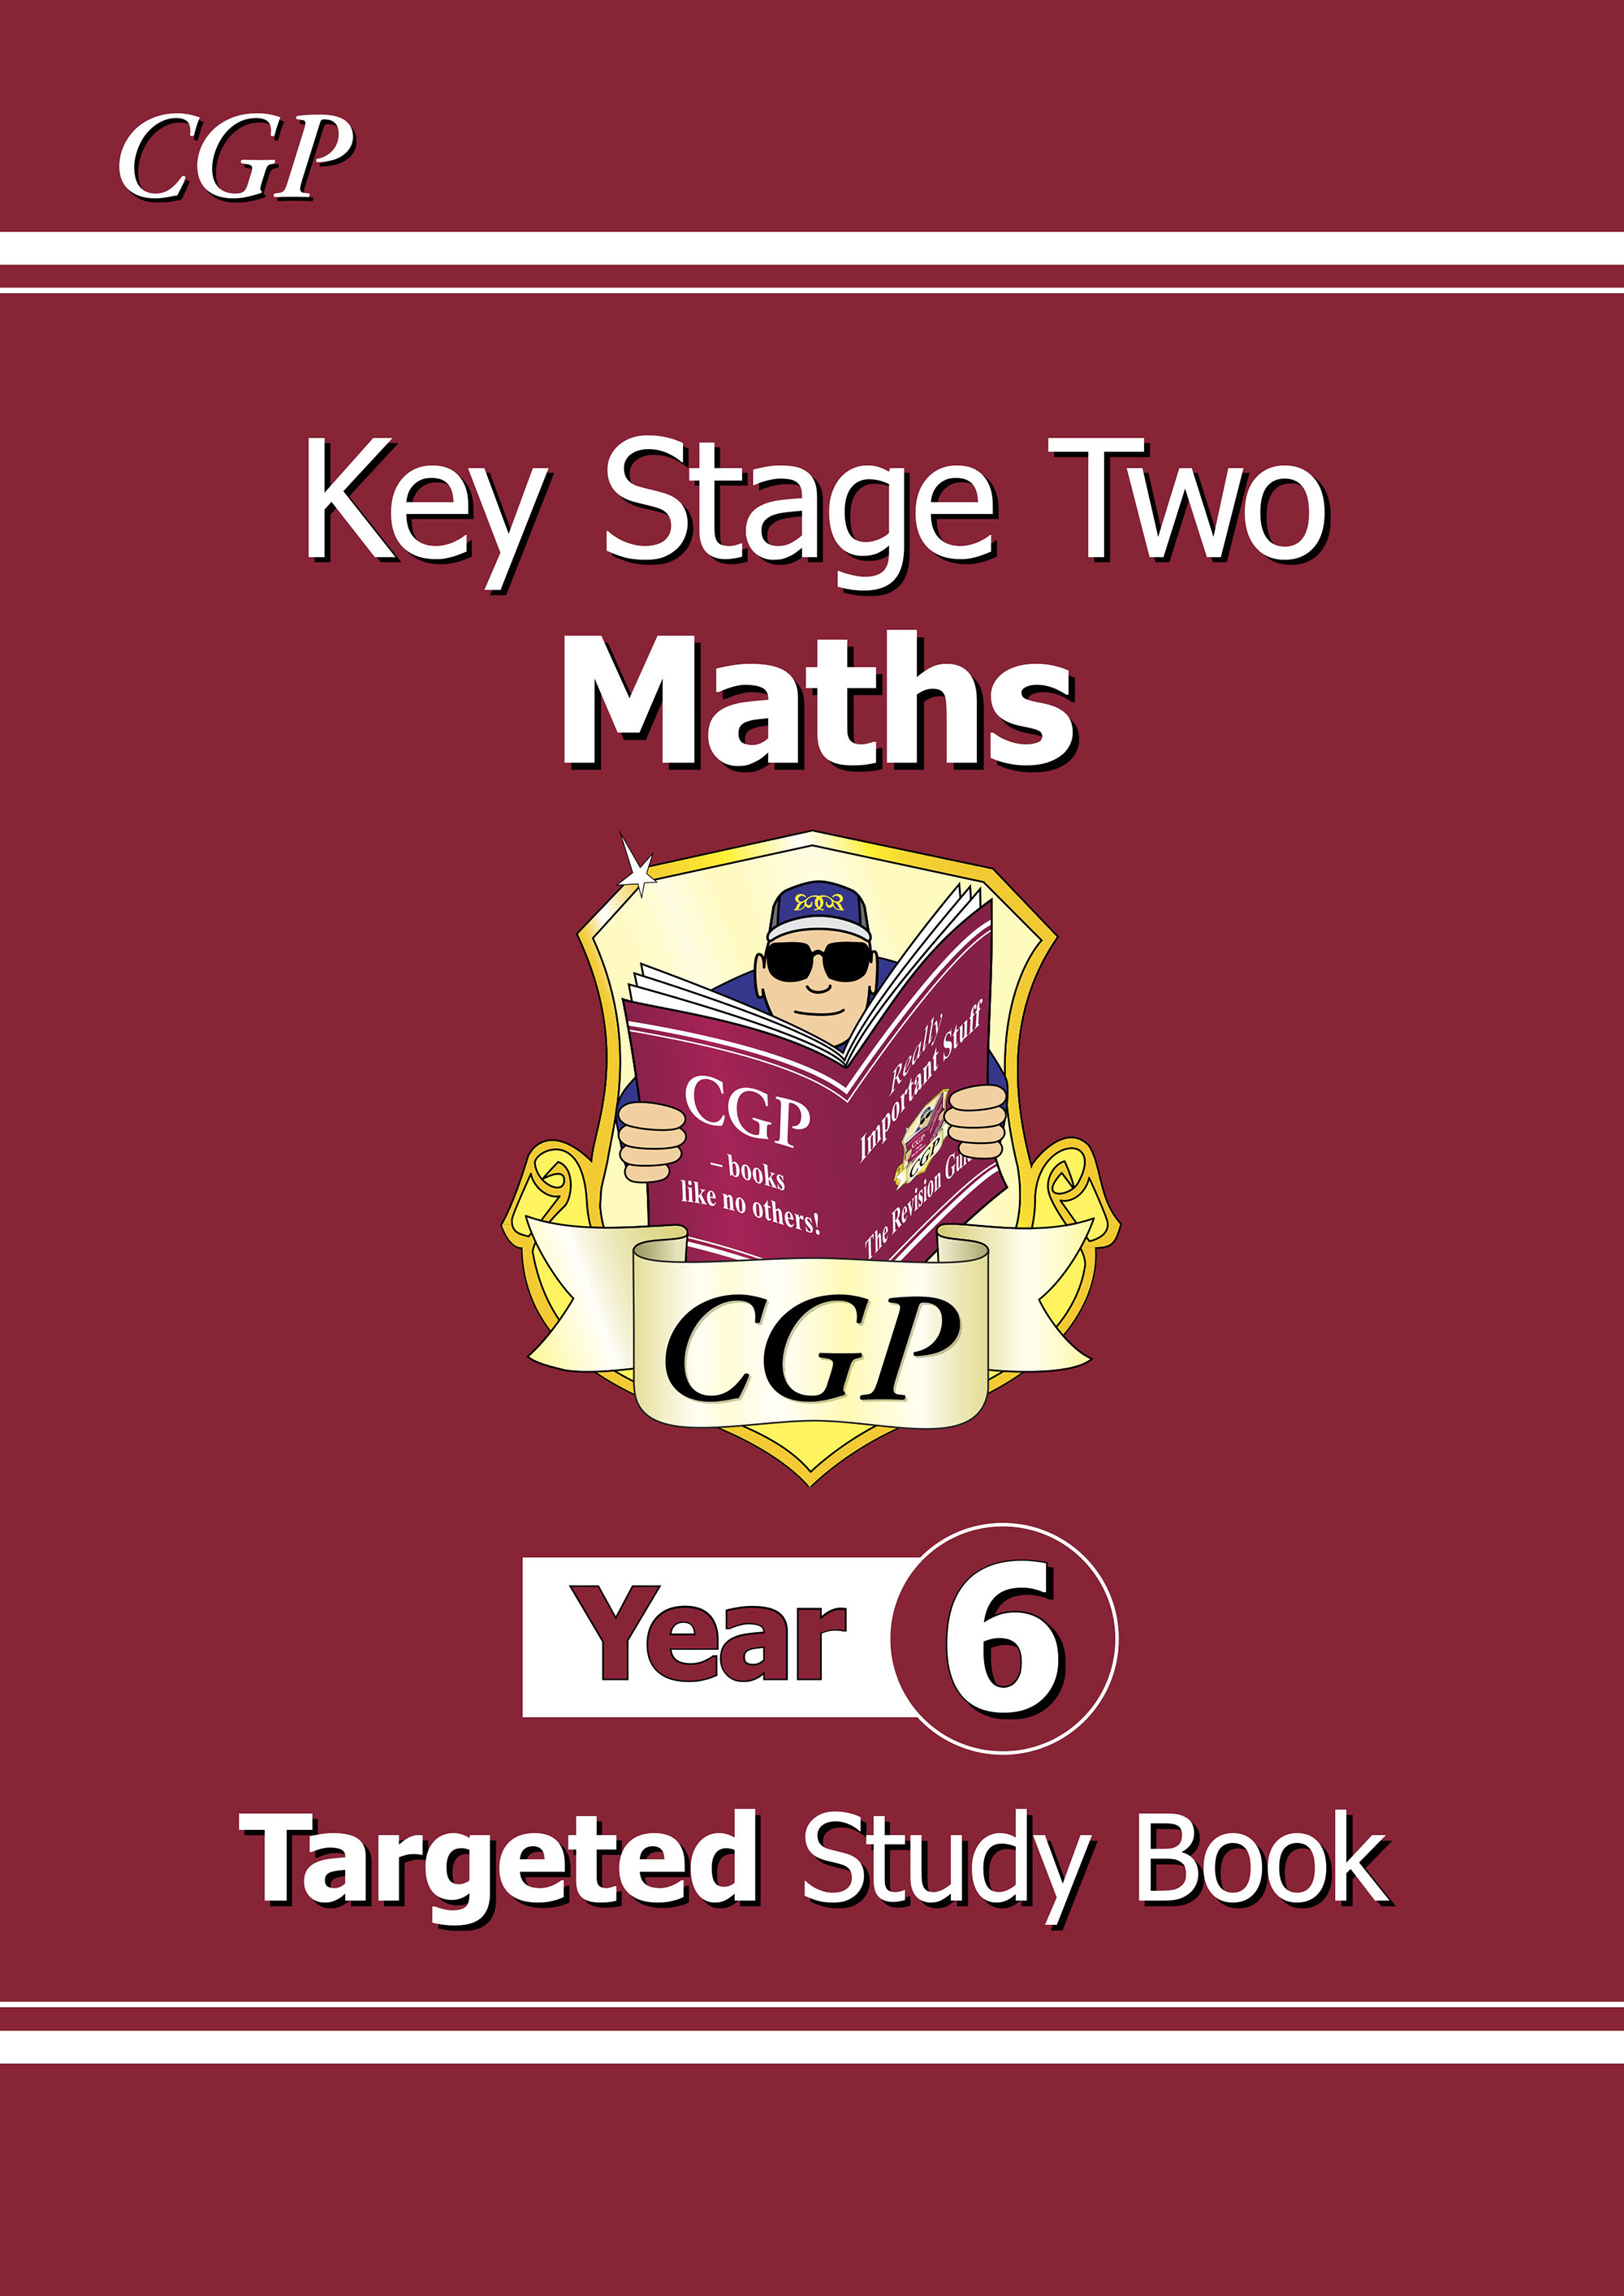 M6R23DK - KS2 Maths Targeted Study Book - Year 6